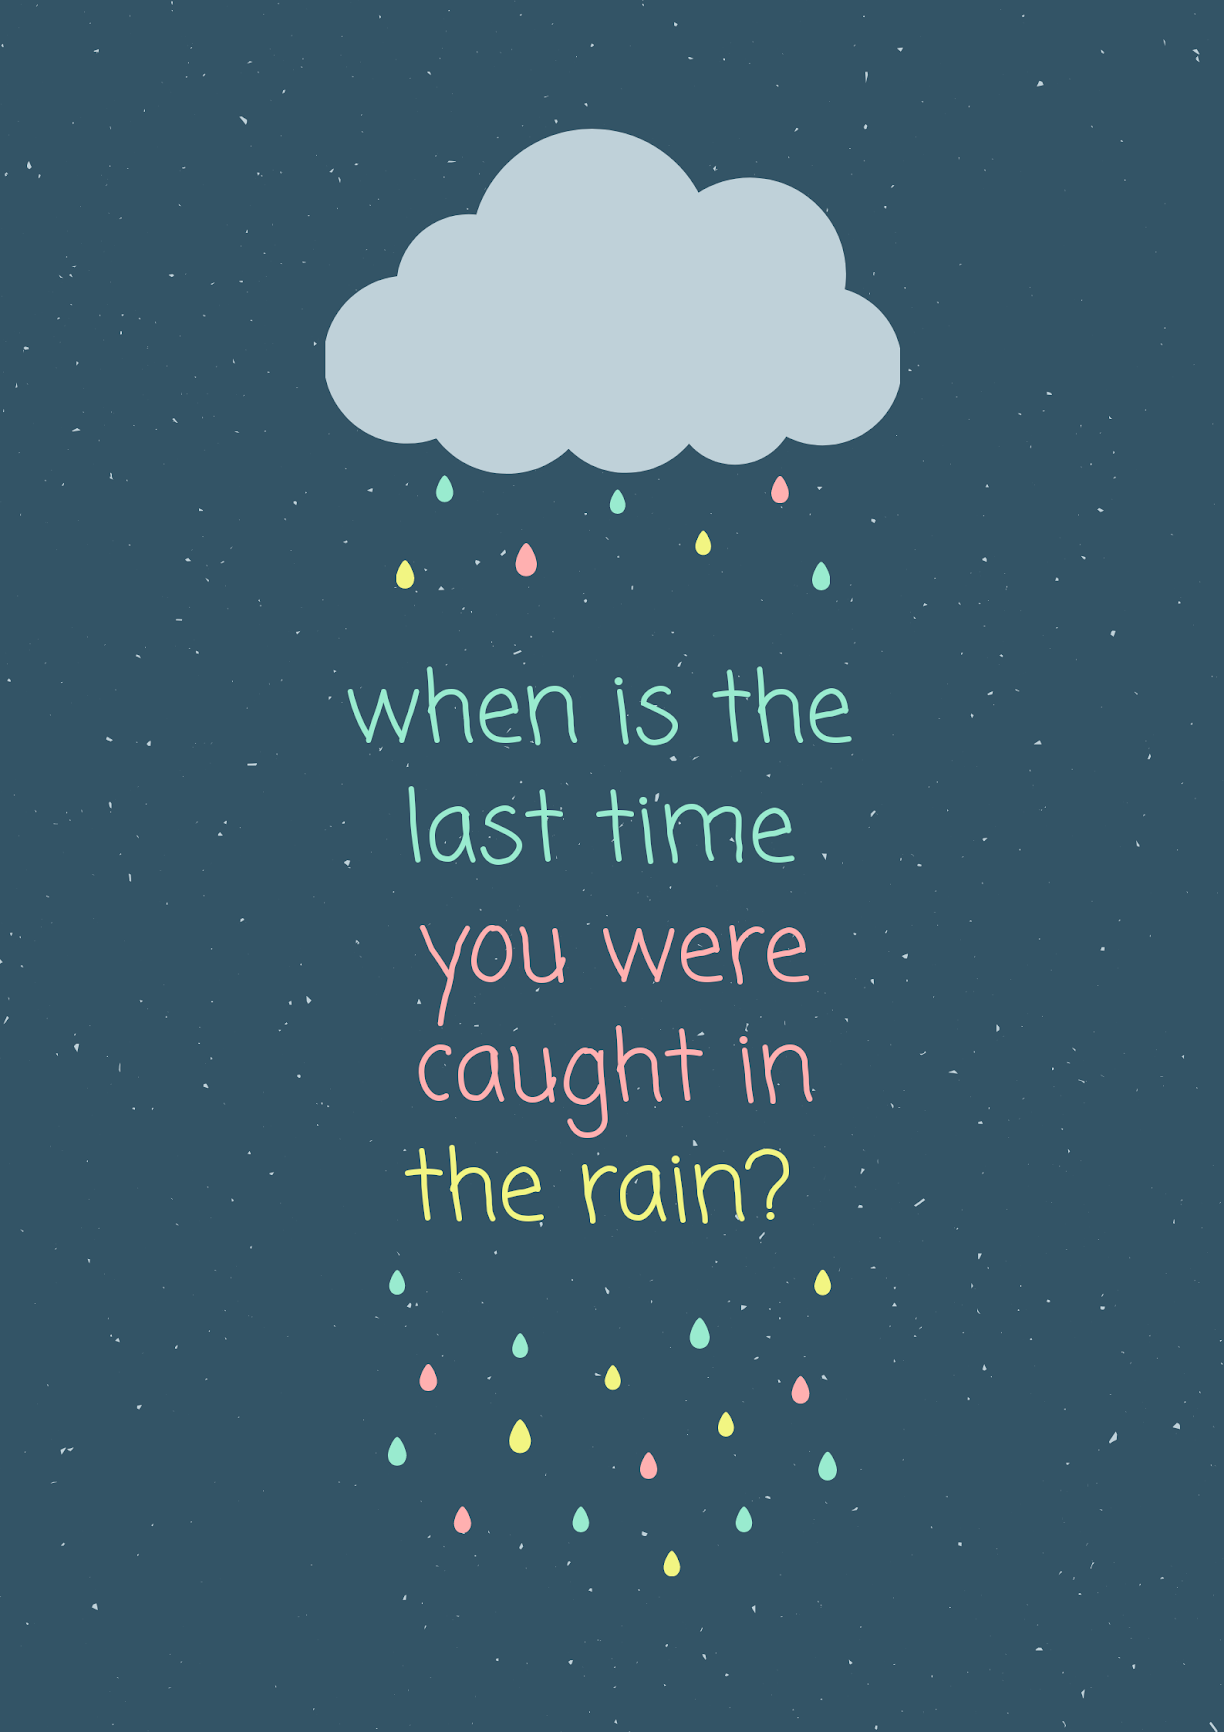 when is the last time you were caught in the rain?